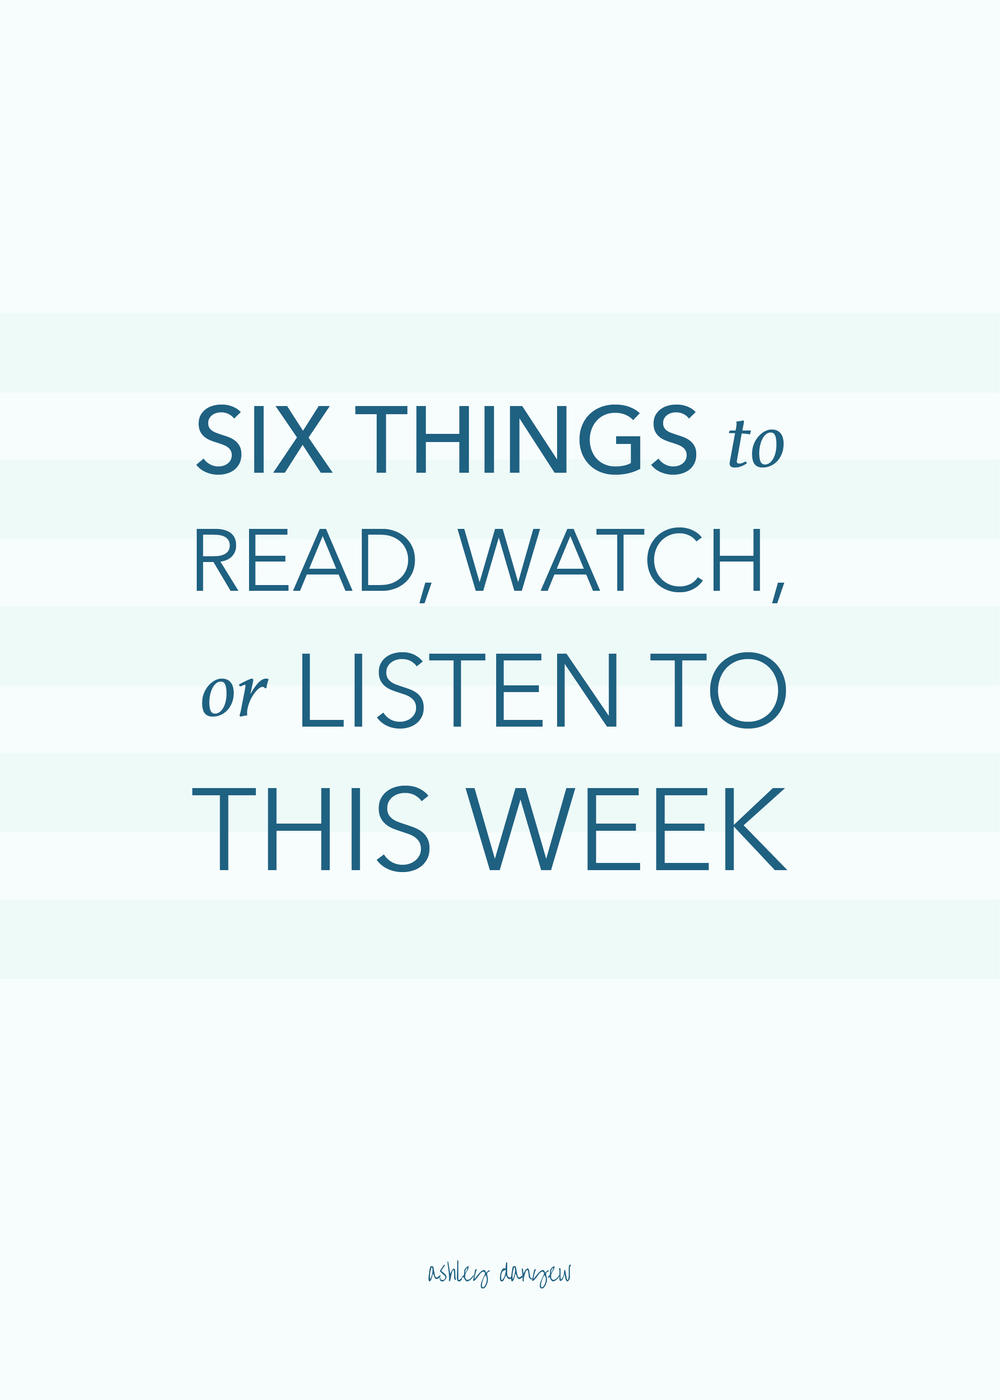 Six Things to Read, Watch, or Listen to This Week-17.png